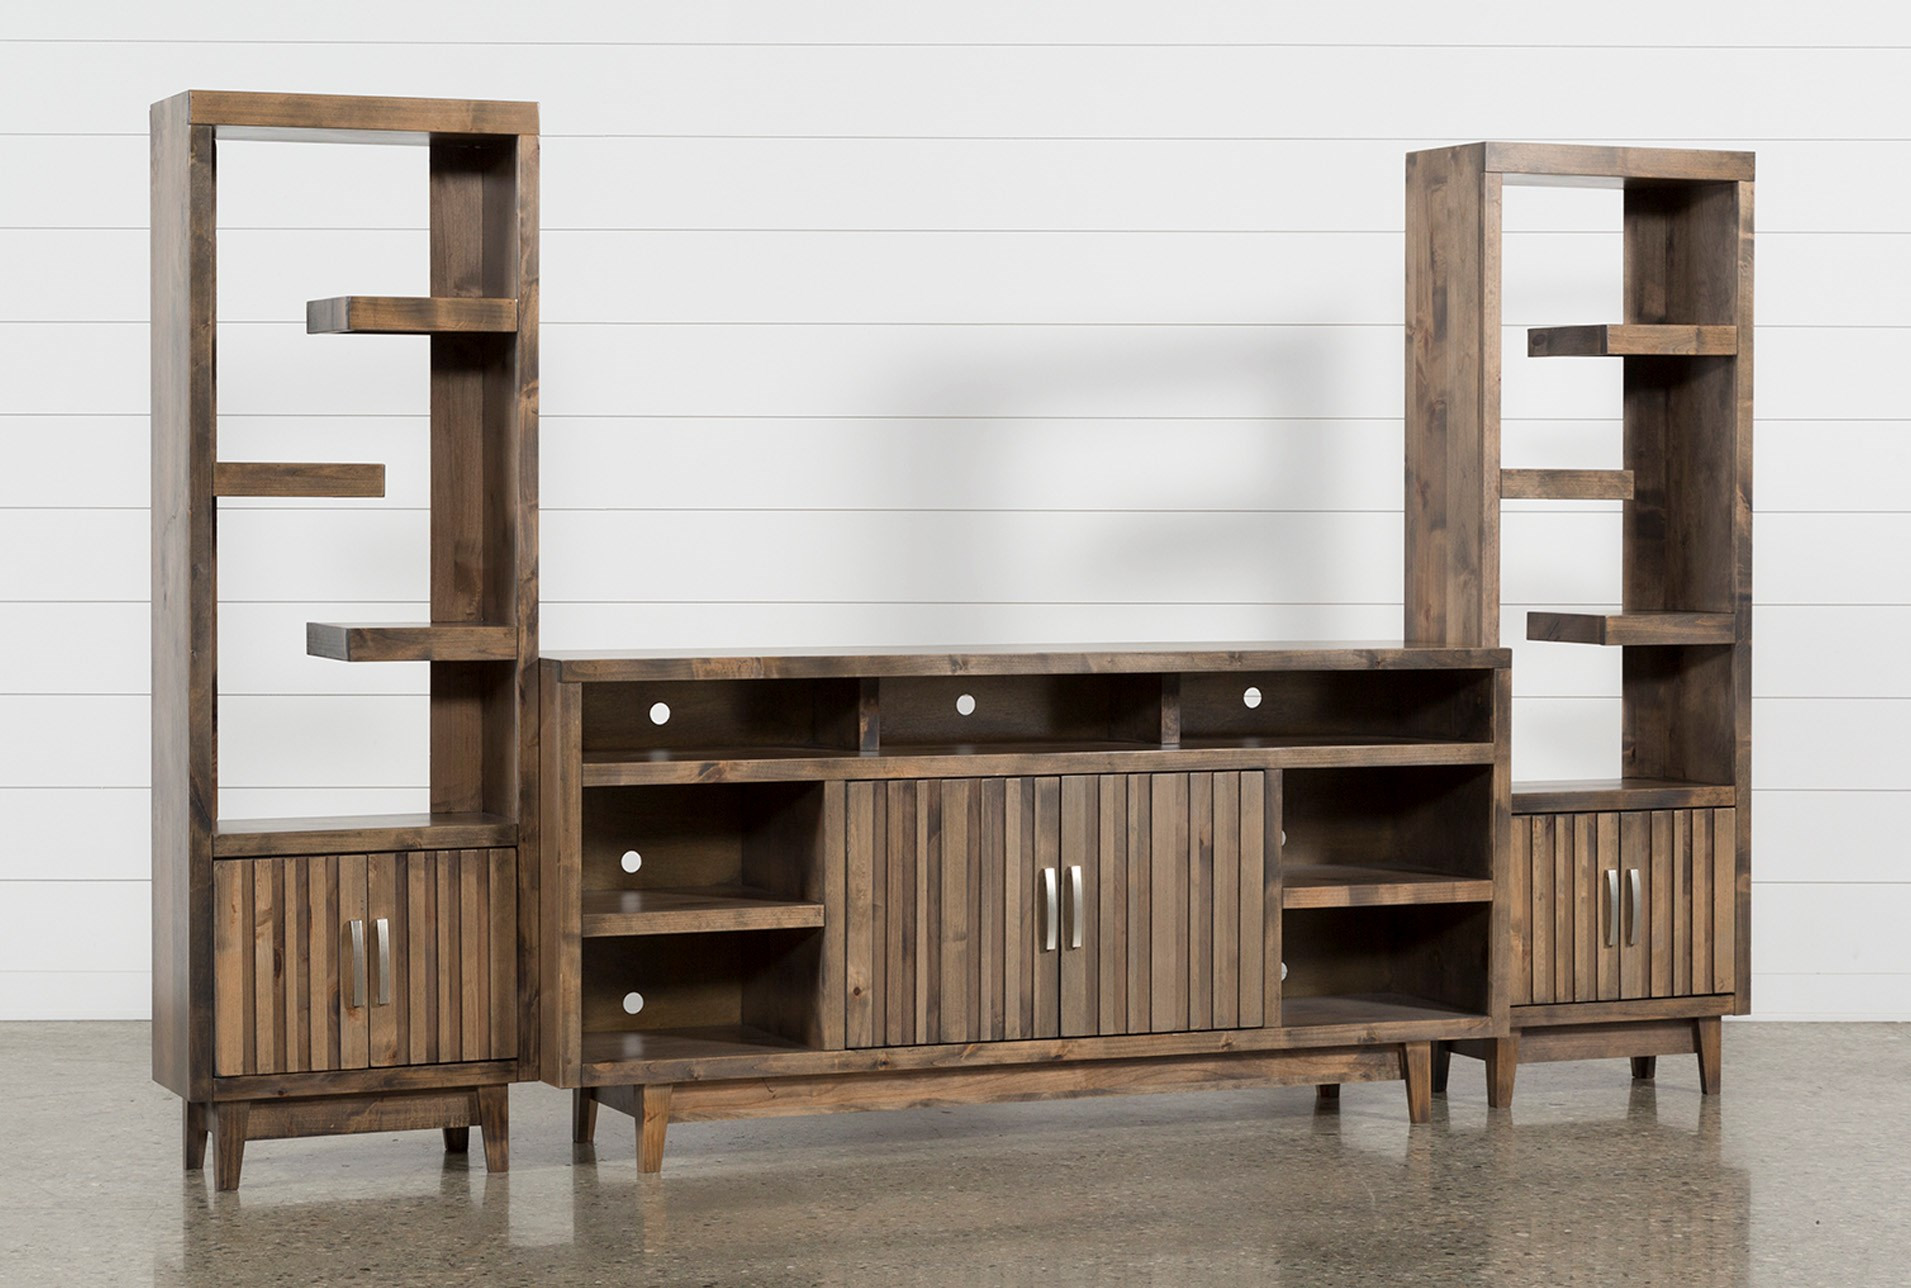 Lauderdale 3 Piece Entertainment Center With 74 Inch Tv Stand Qty 1 Has Been Successfully Added To Your Cart